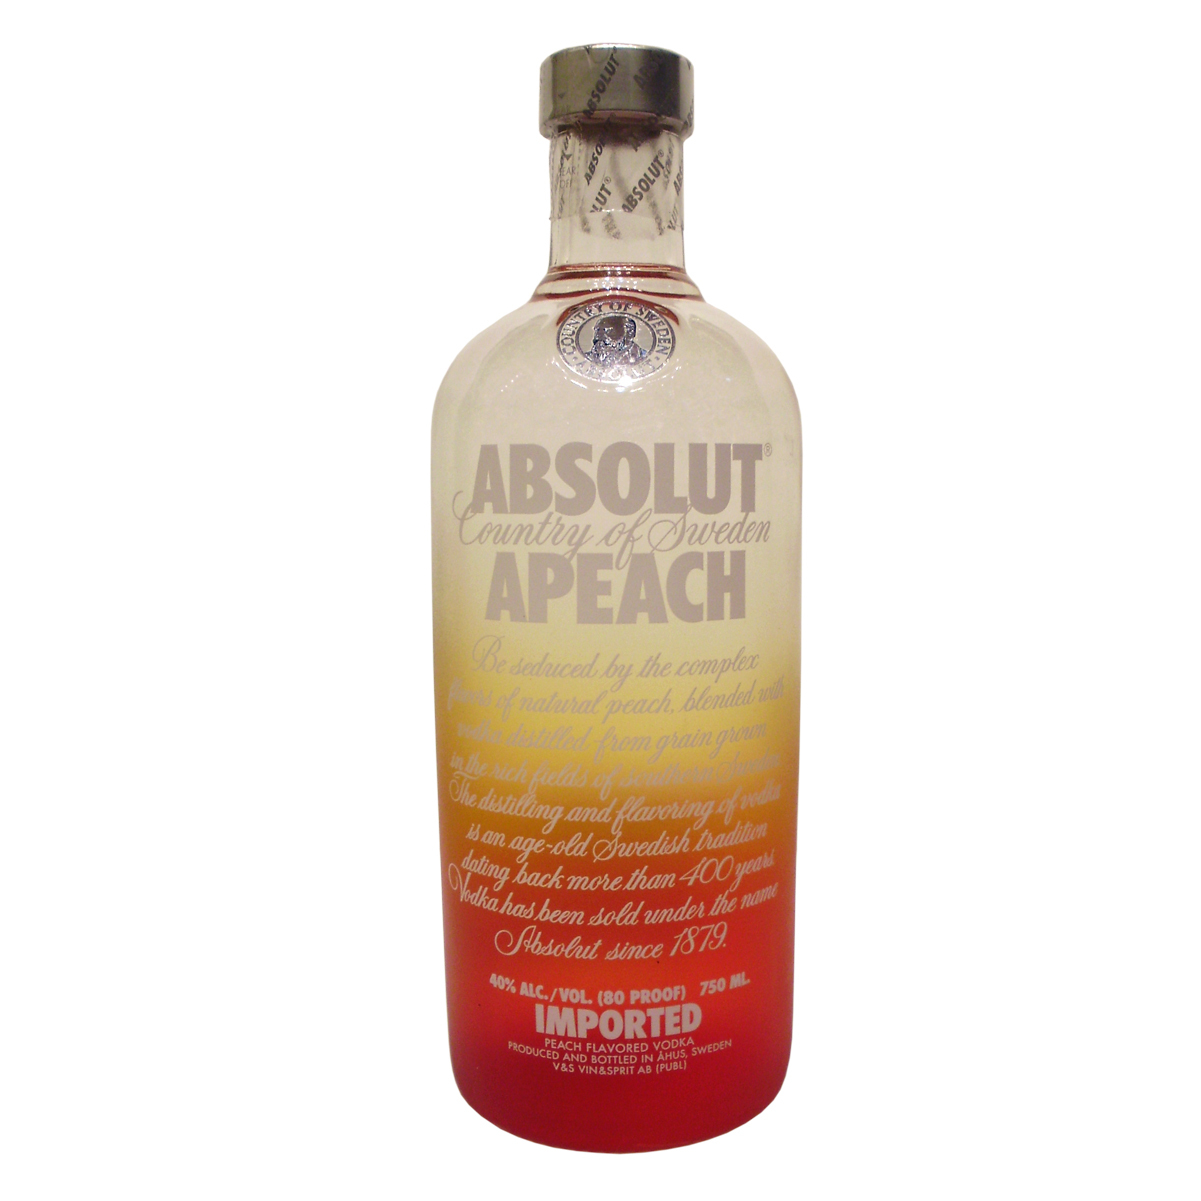 〖洋酒〗瑞典绝对伏特加蜜桃味 ABSOLUT APEACH VODKA 原装正品